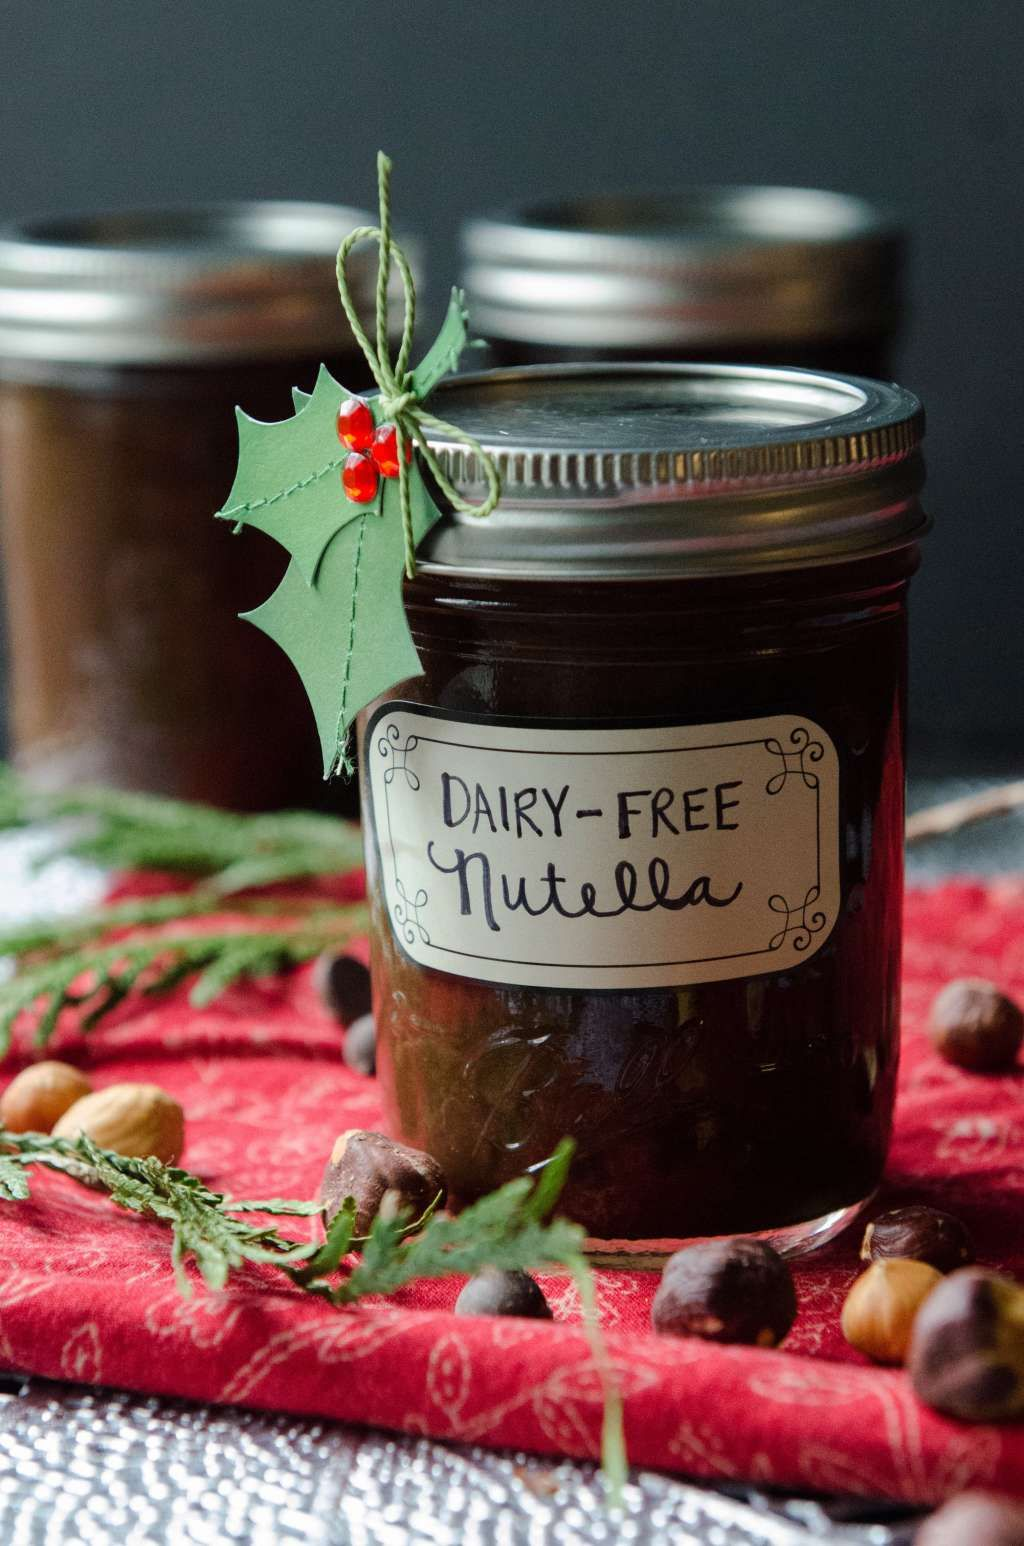 Dairyfree nutella recipe with images dairy free